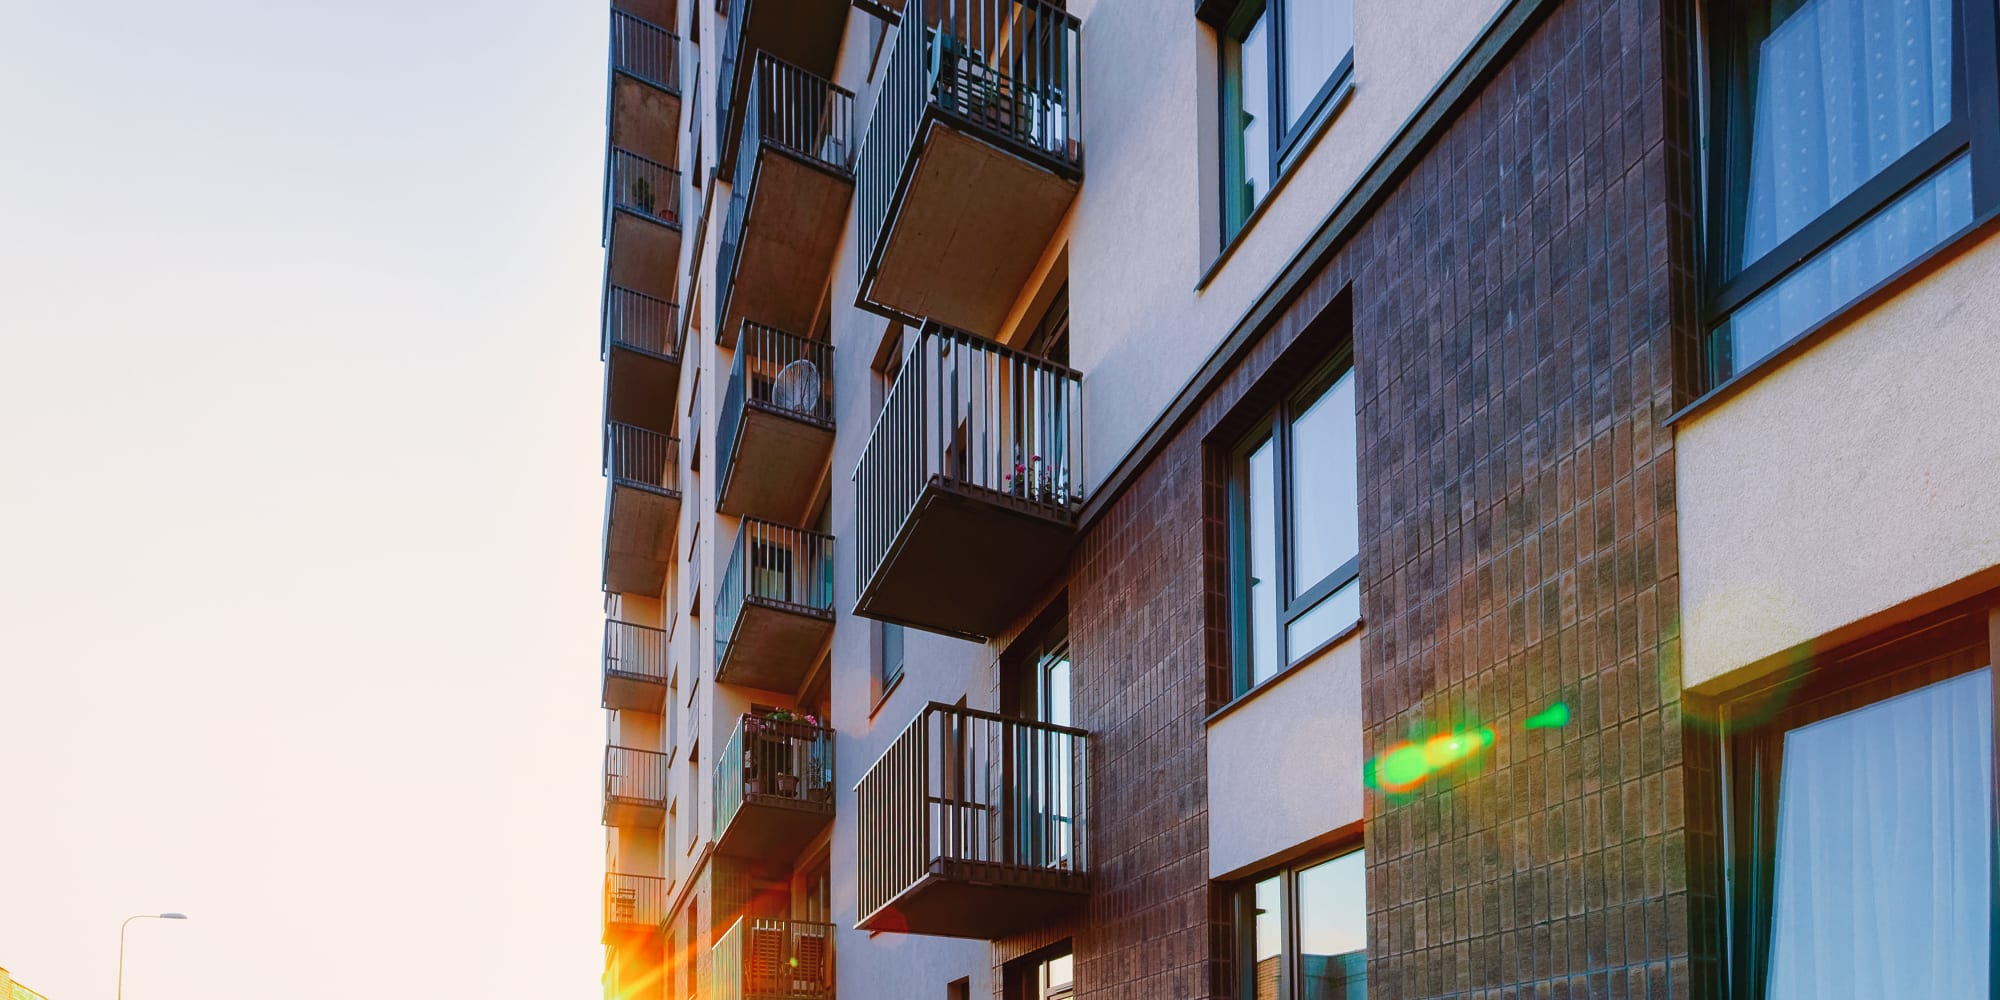 Oaks Properties in Minneapolis, Minnesota offers multifamily housing